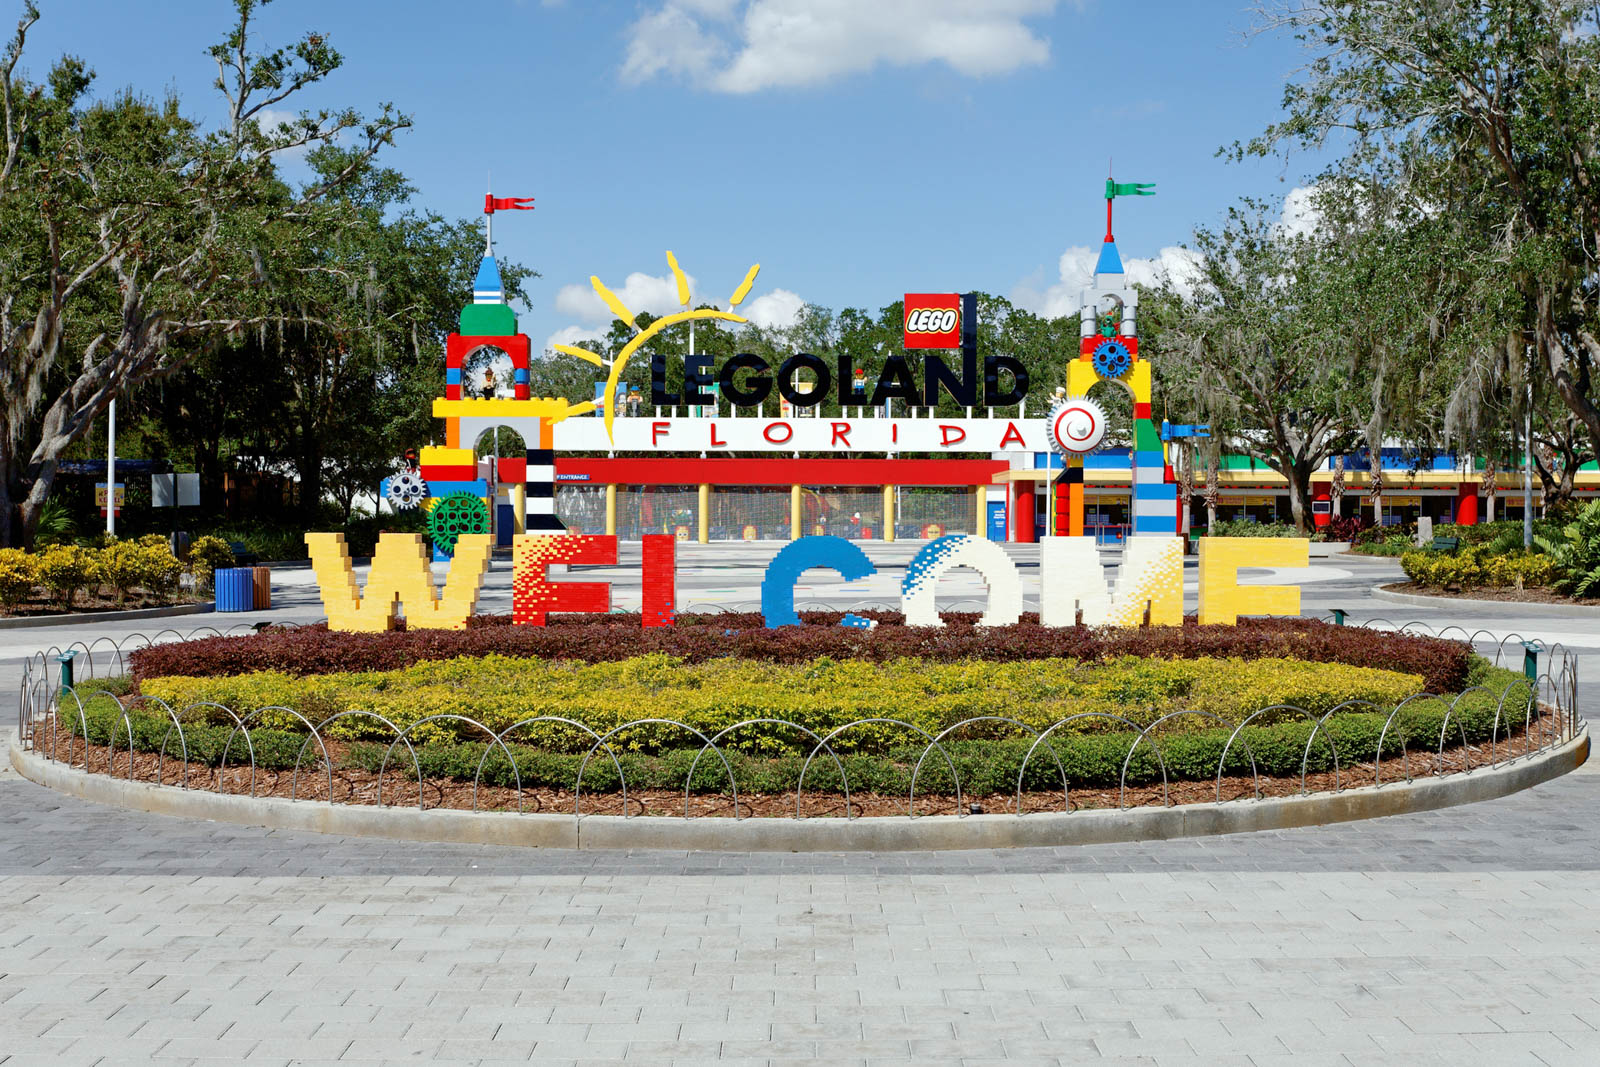 Winter Haven is among the fun things to do in Orlando for people of all ages but especially kids. There are unique things to do in Orlando like this all over the city.